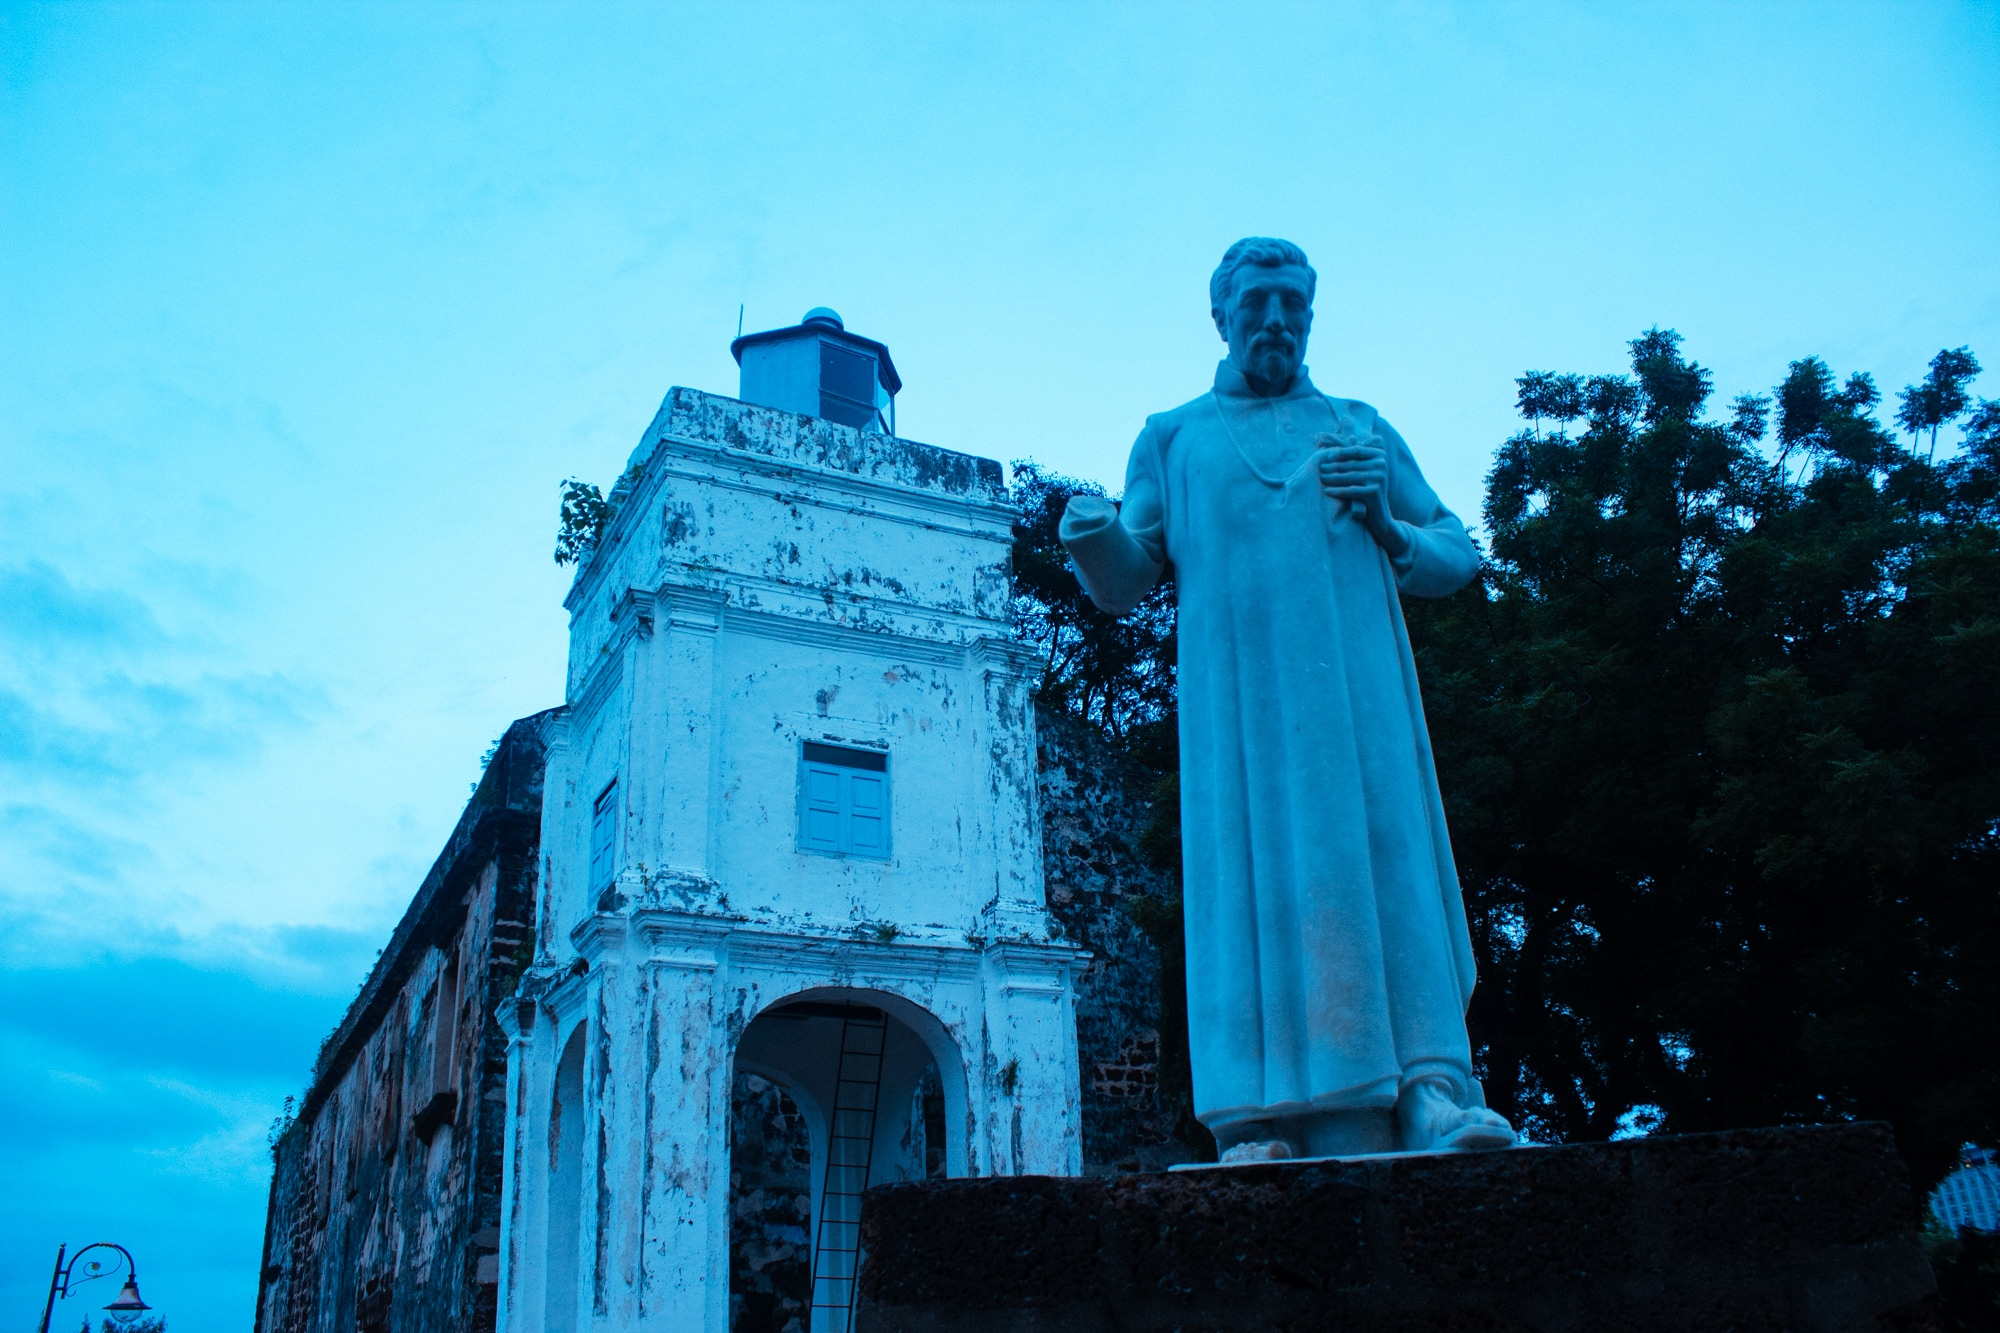 Statue of St Francis Xavier at Saint Paul Church in Malacca